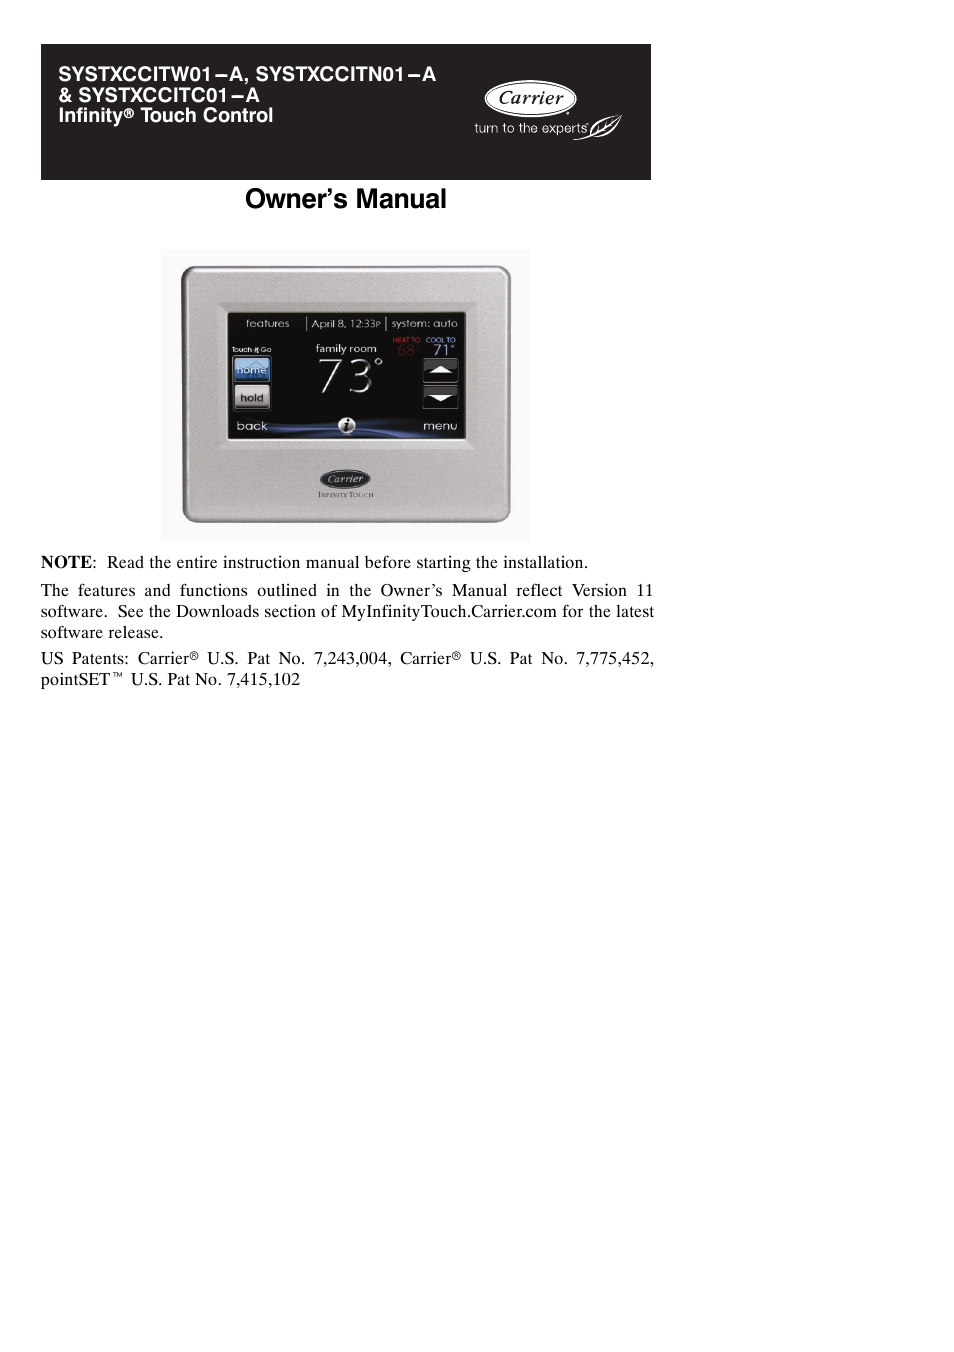 Carrier Infinity SYSTXCCITC01-A User Manual | 68 pages | Also for: Infinity  SYSTXCCITN01-A, Infinity SYSTXCCITW01-A, infinity thermostat